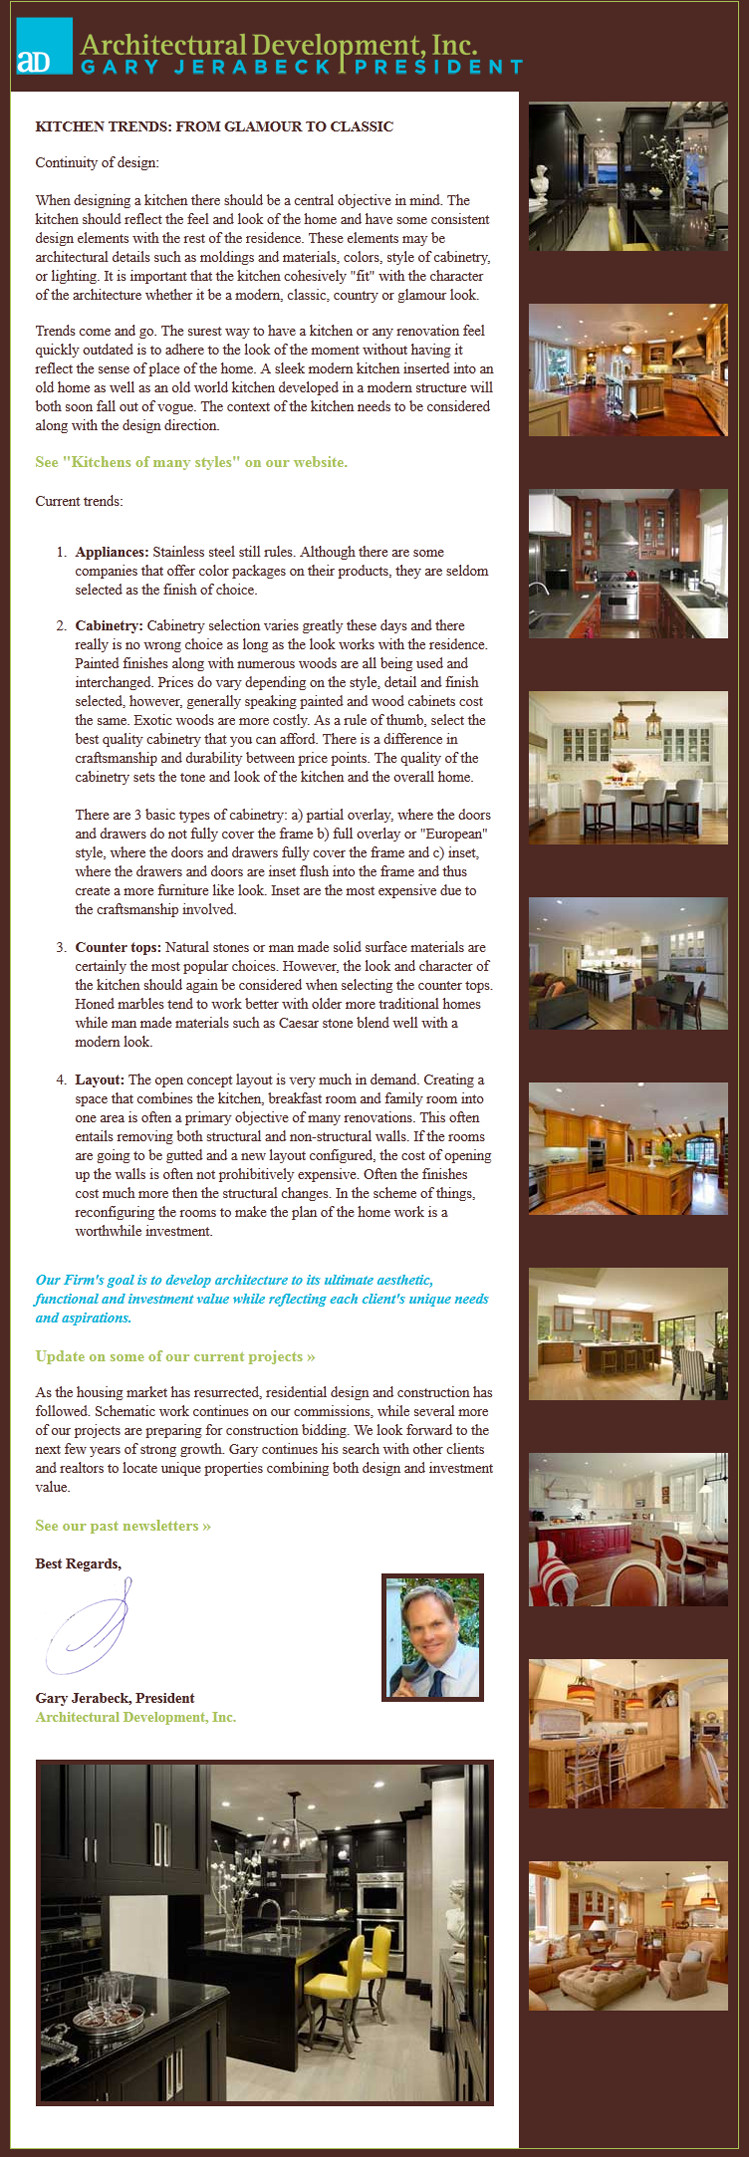 Architectural Development, Inc., Newsletter 8, February 2013